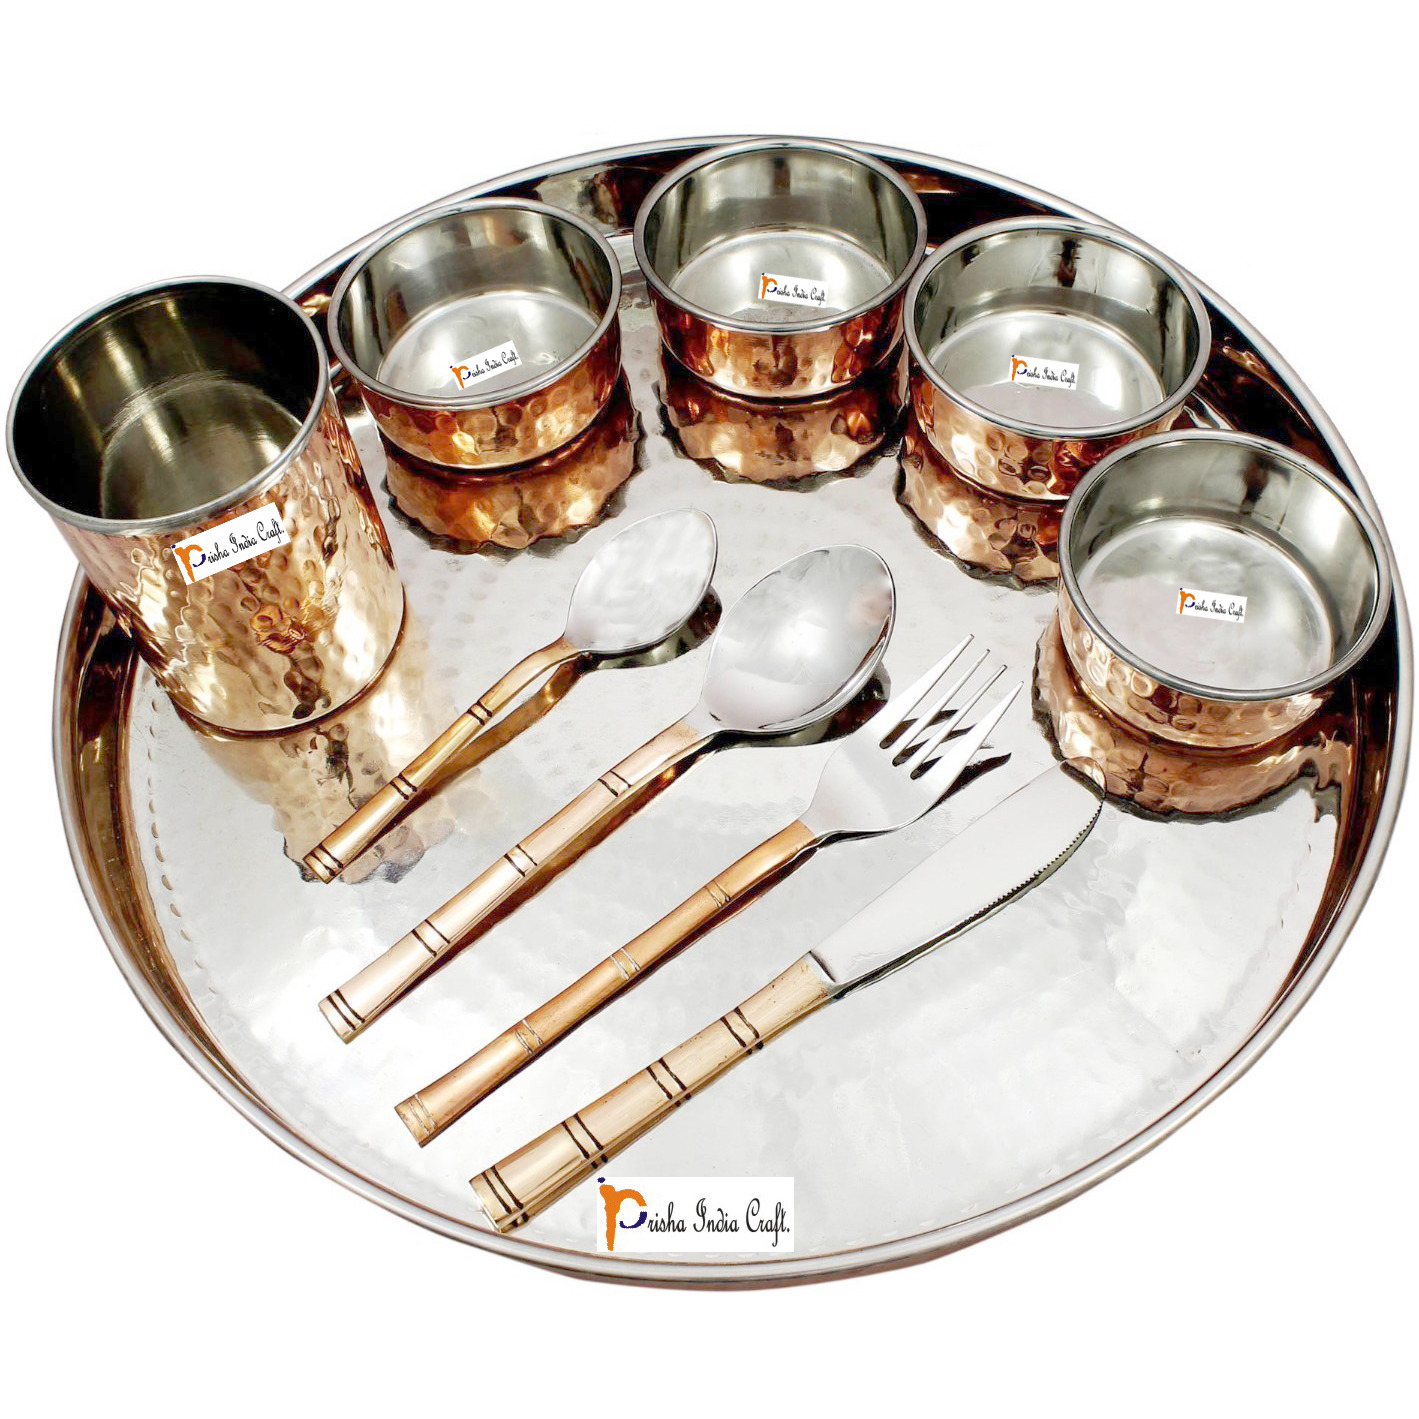 Prisha India Craft B. Set of 5 Dinnerware Traditional Stainless Steel Copper Dinner Set of Thali Plate, Bowls, Glass and Spoons, Dia 13  With 1 Pure Copper Hammered Pitcher Jug - Christmas Gift